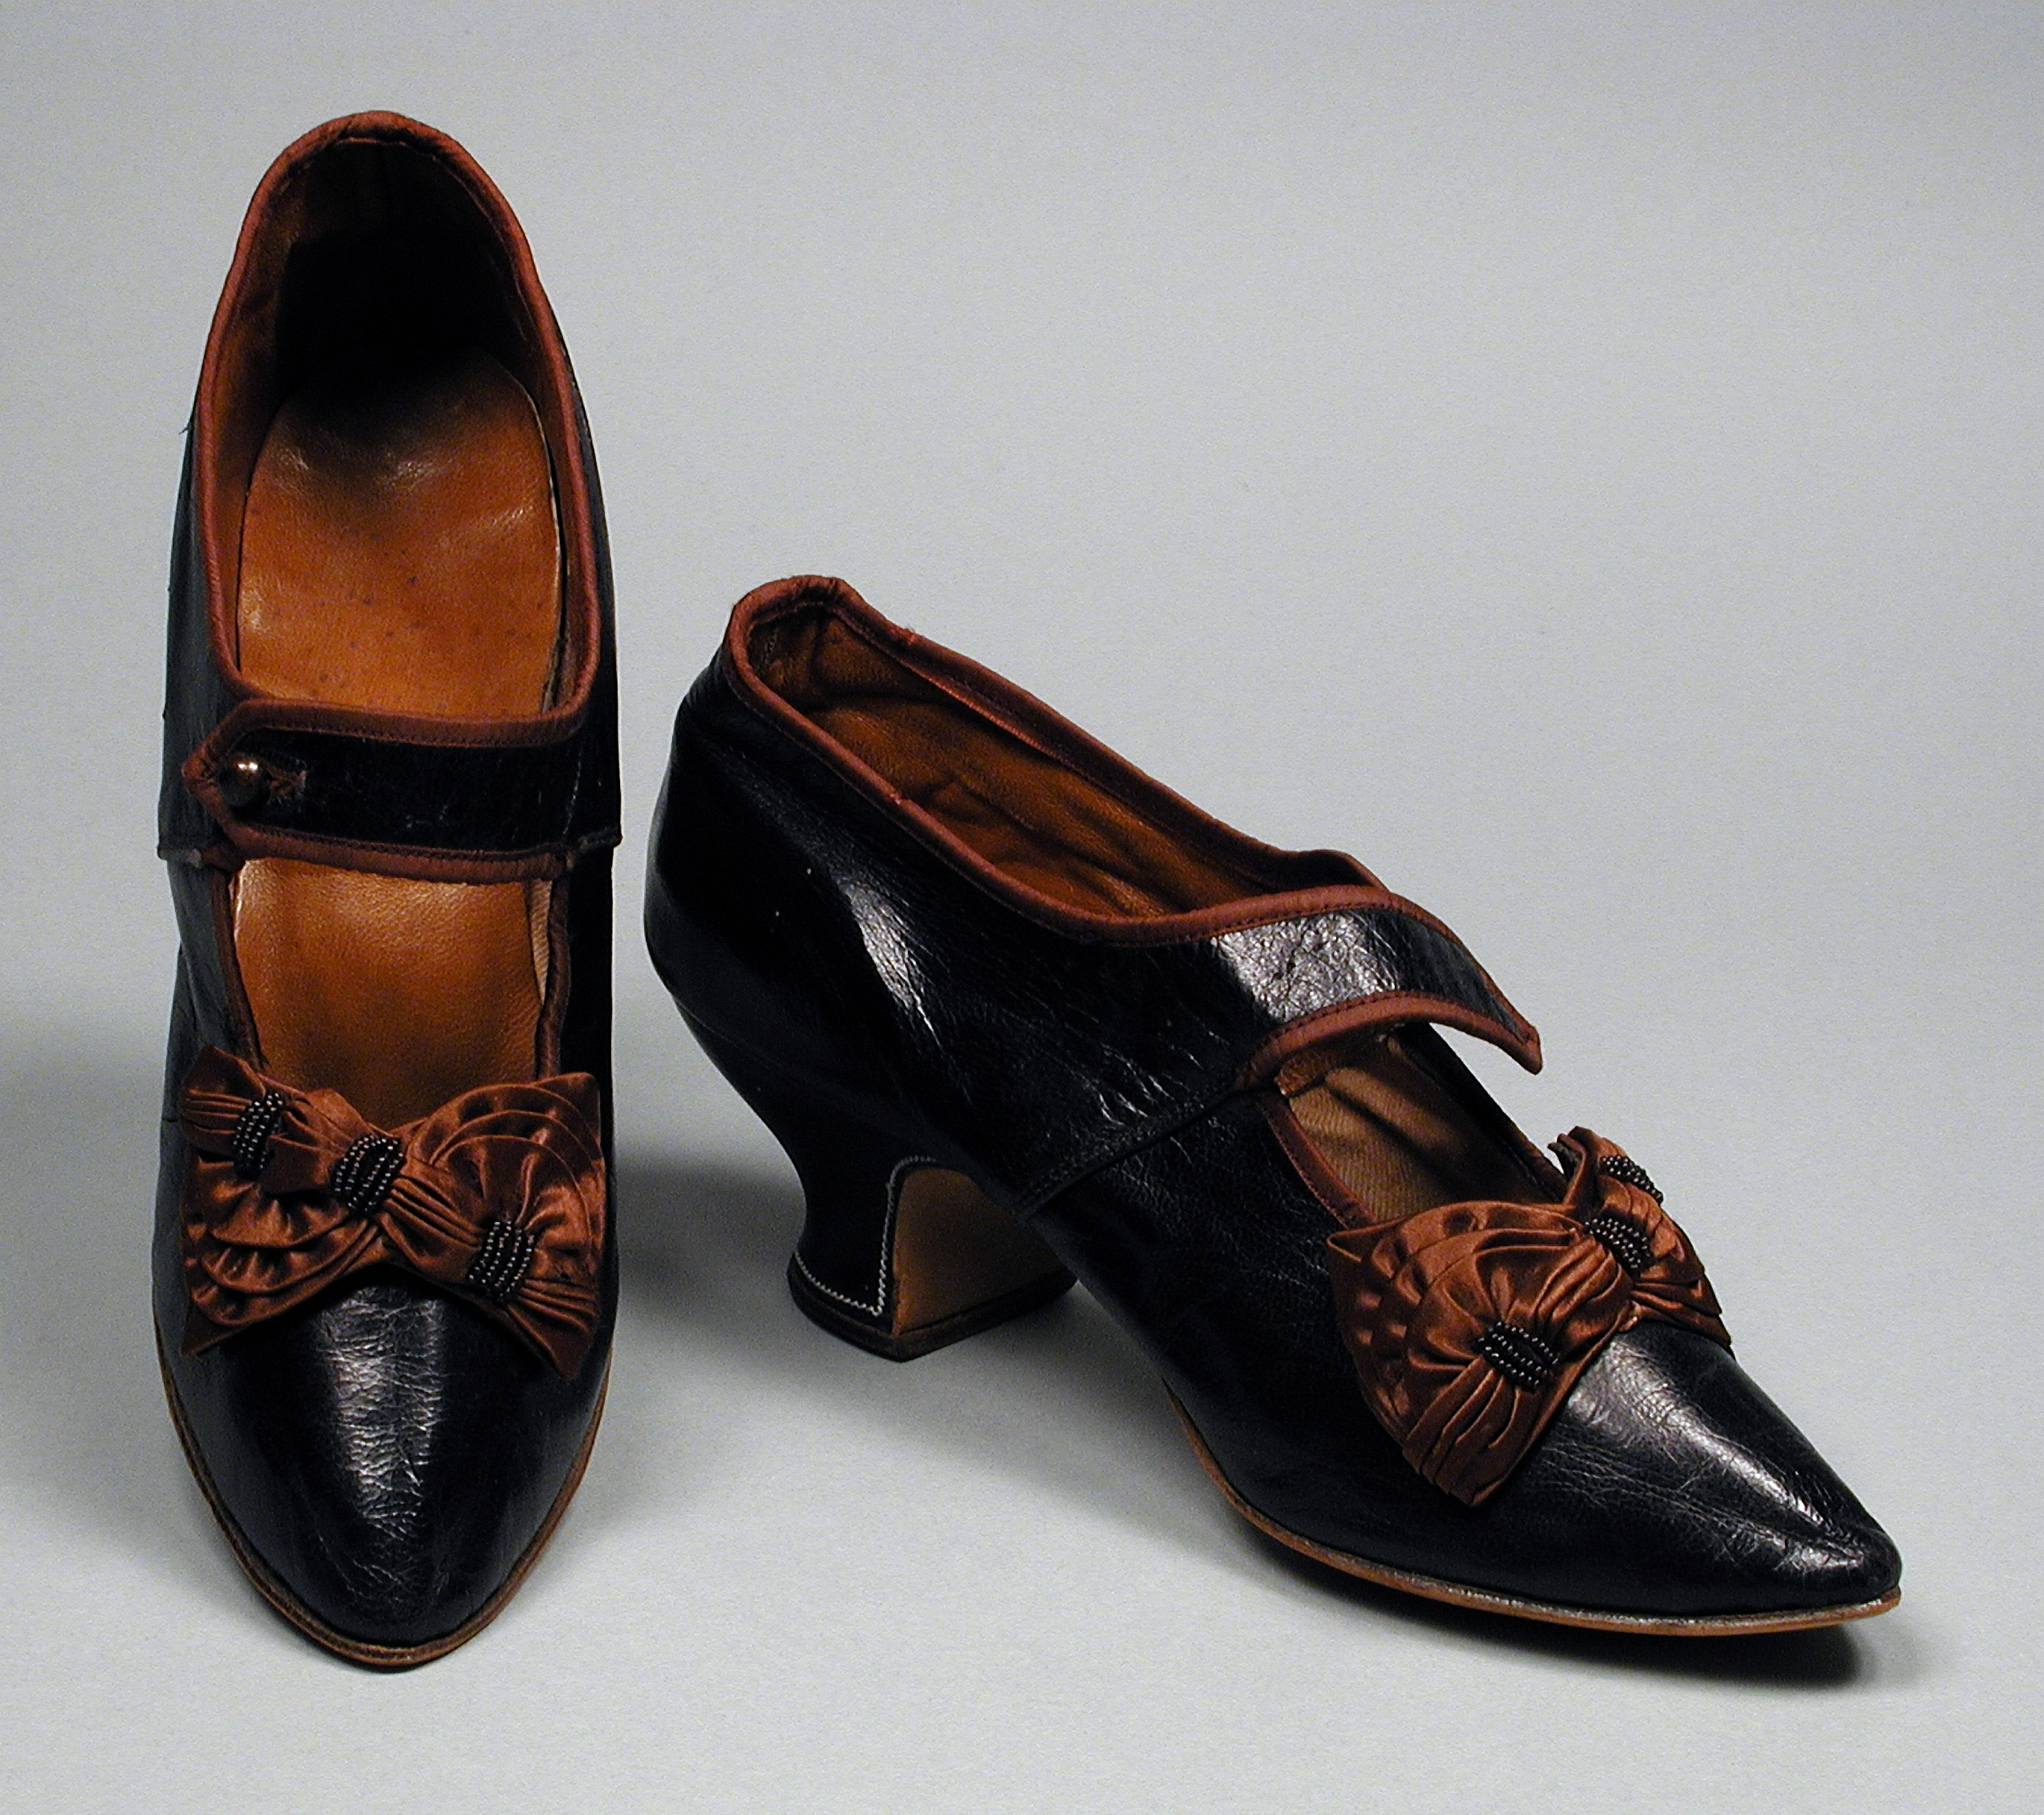 S Reproduction Shoes Wide Shoes